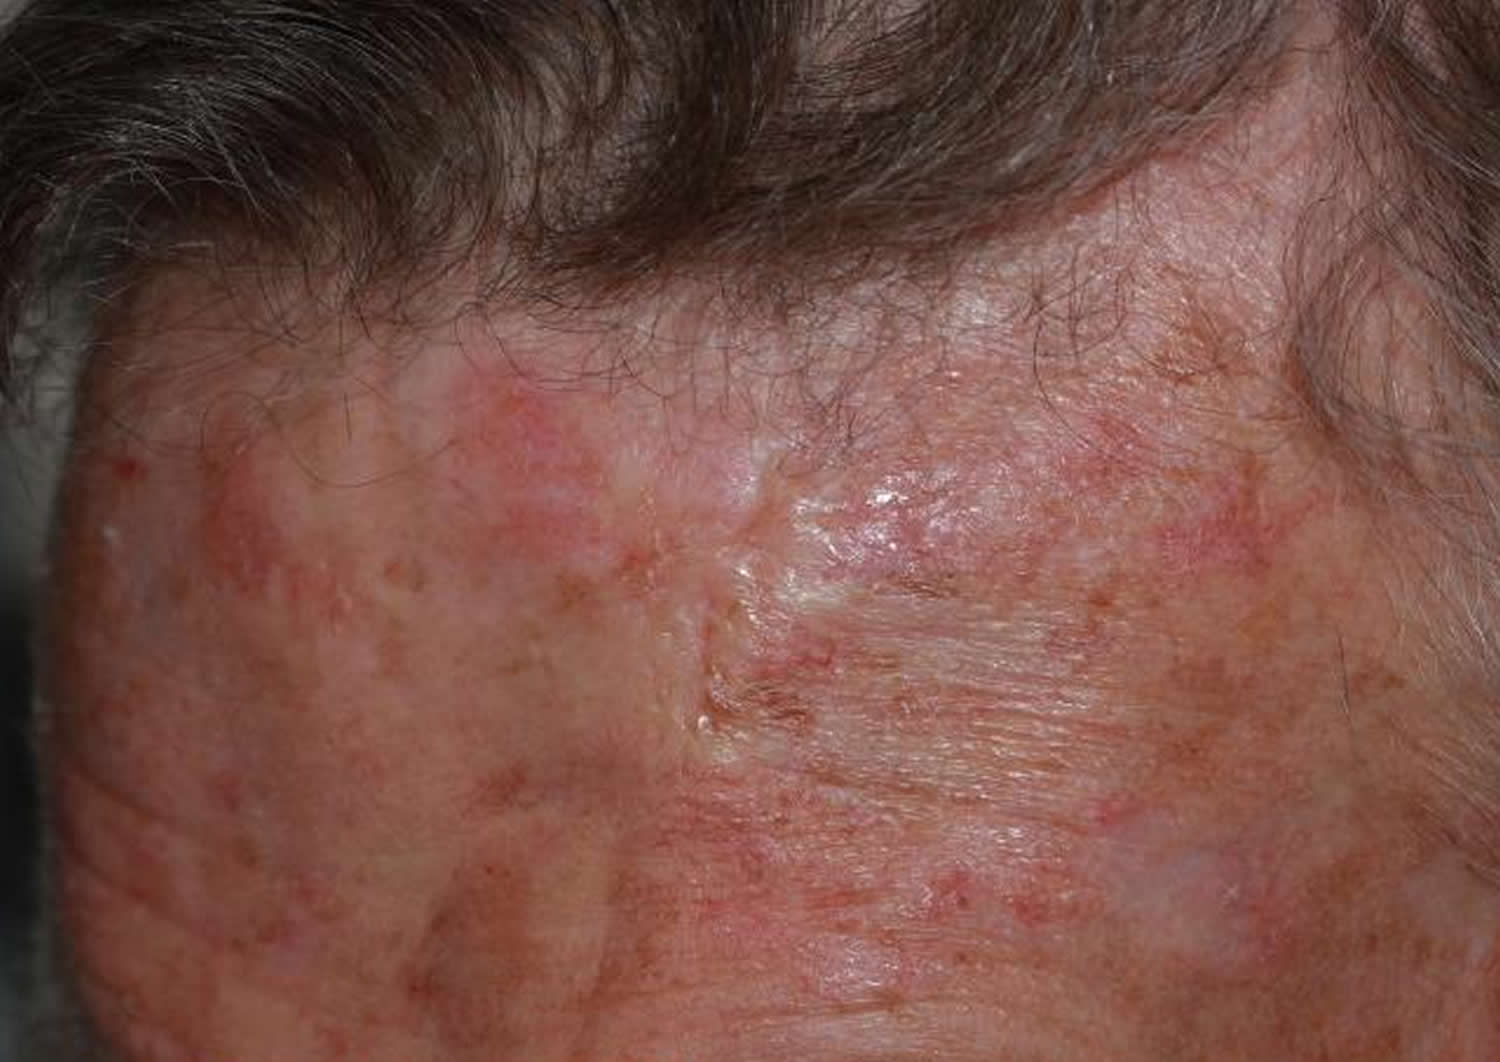 morpheaform basal cell carcinoma - scalp